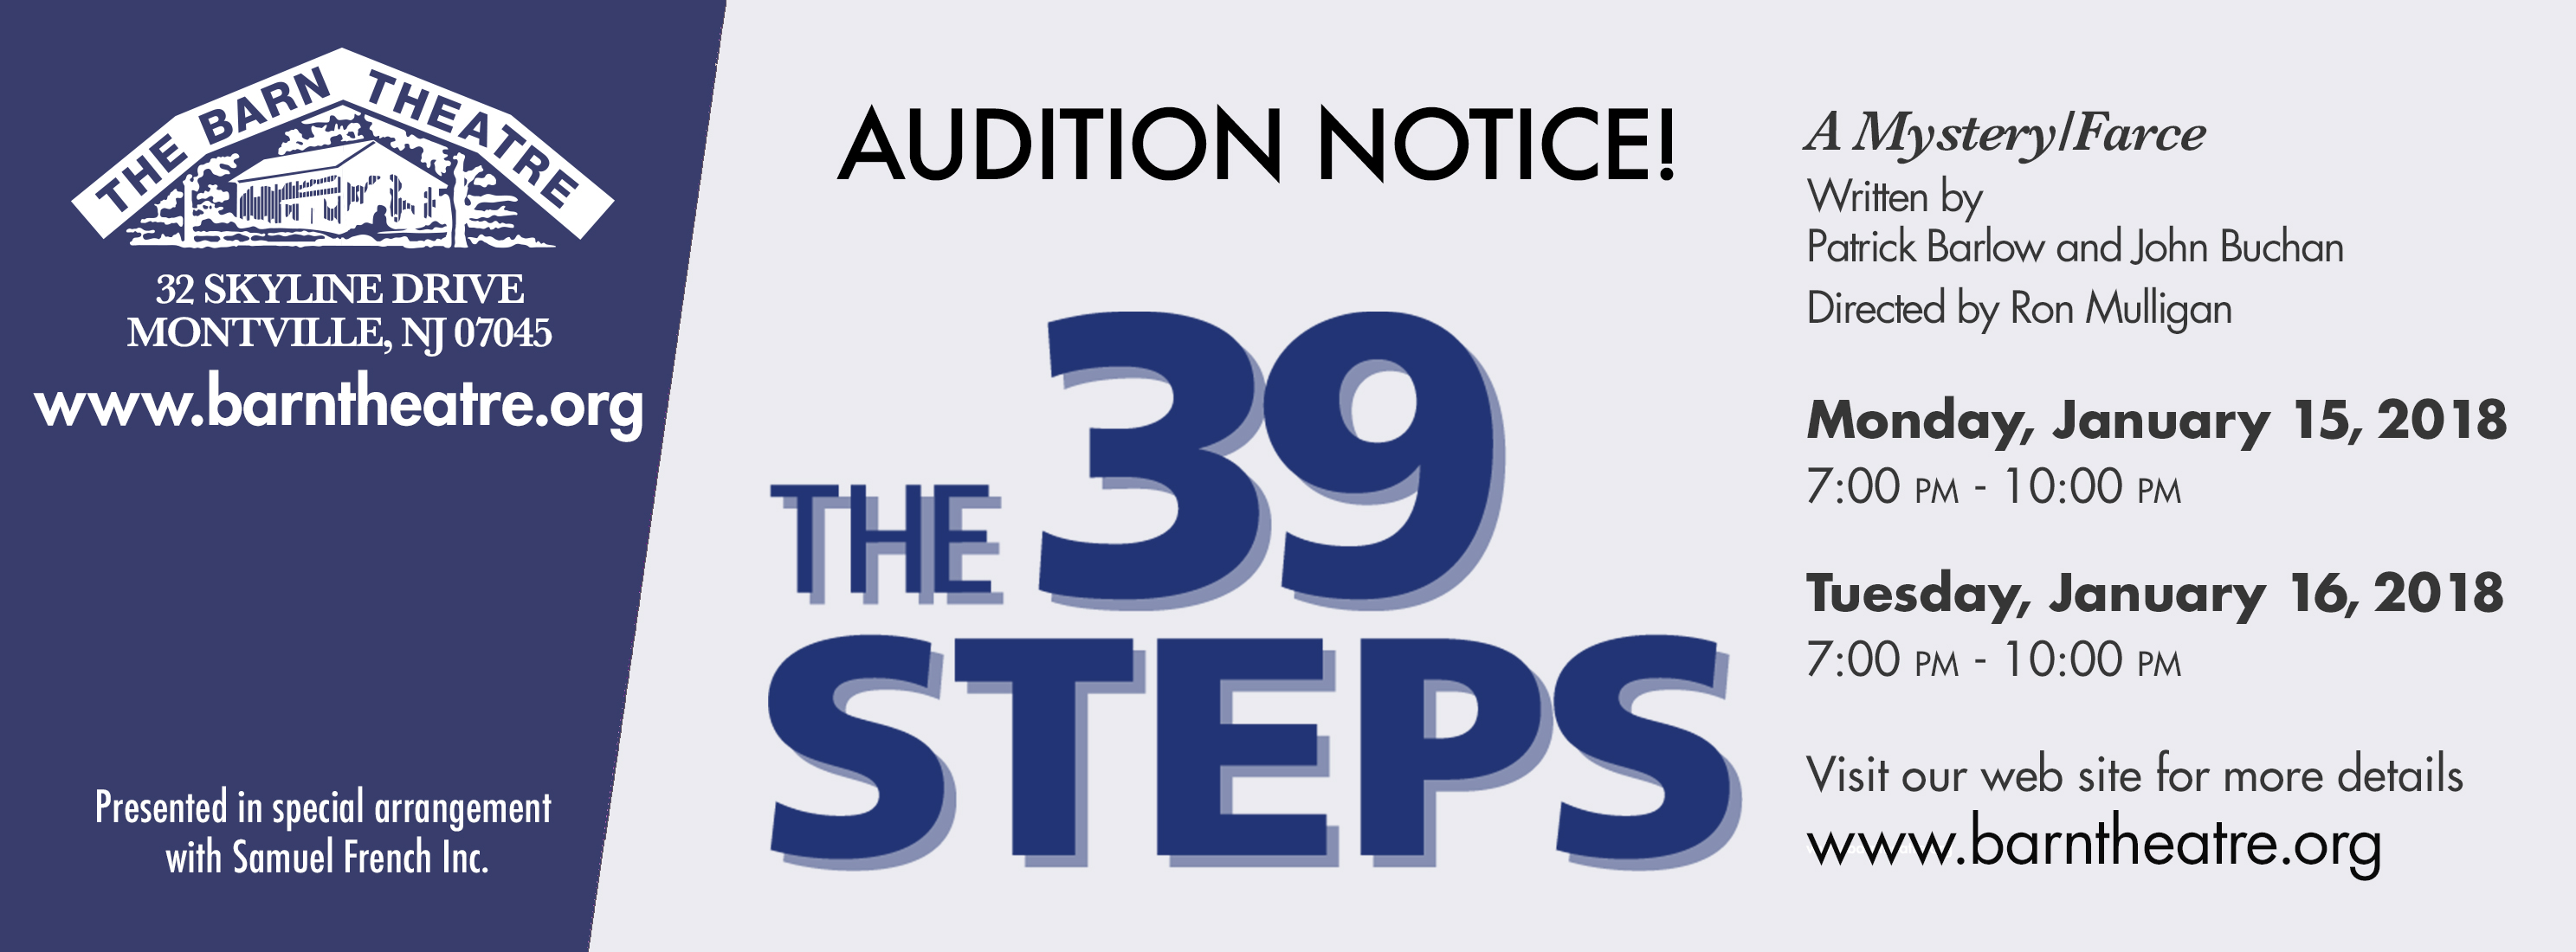 The 39 Steps Auditions